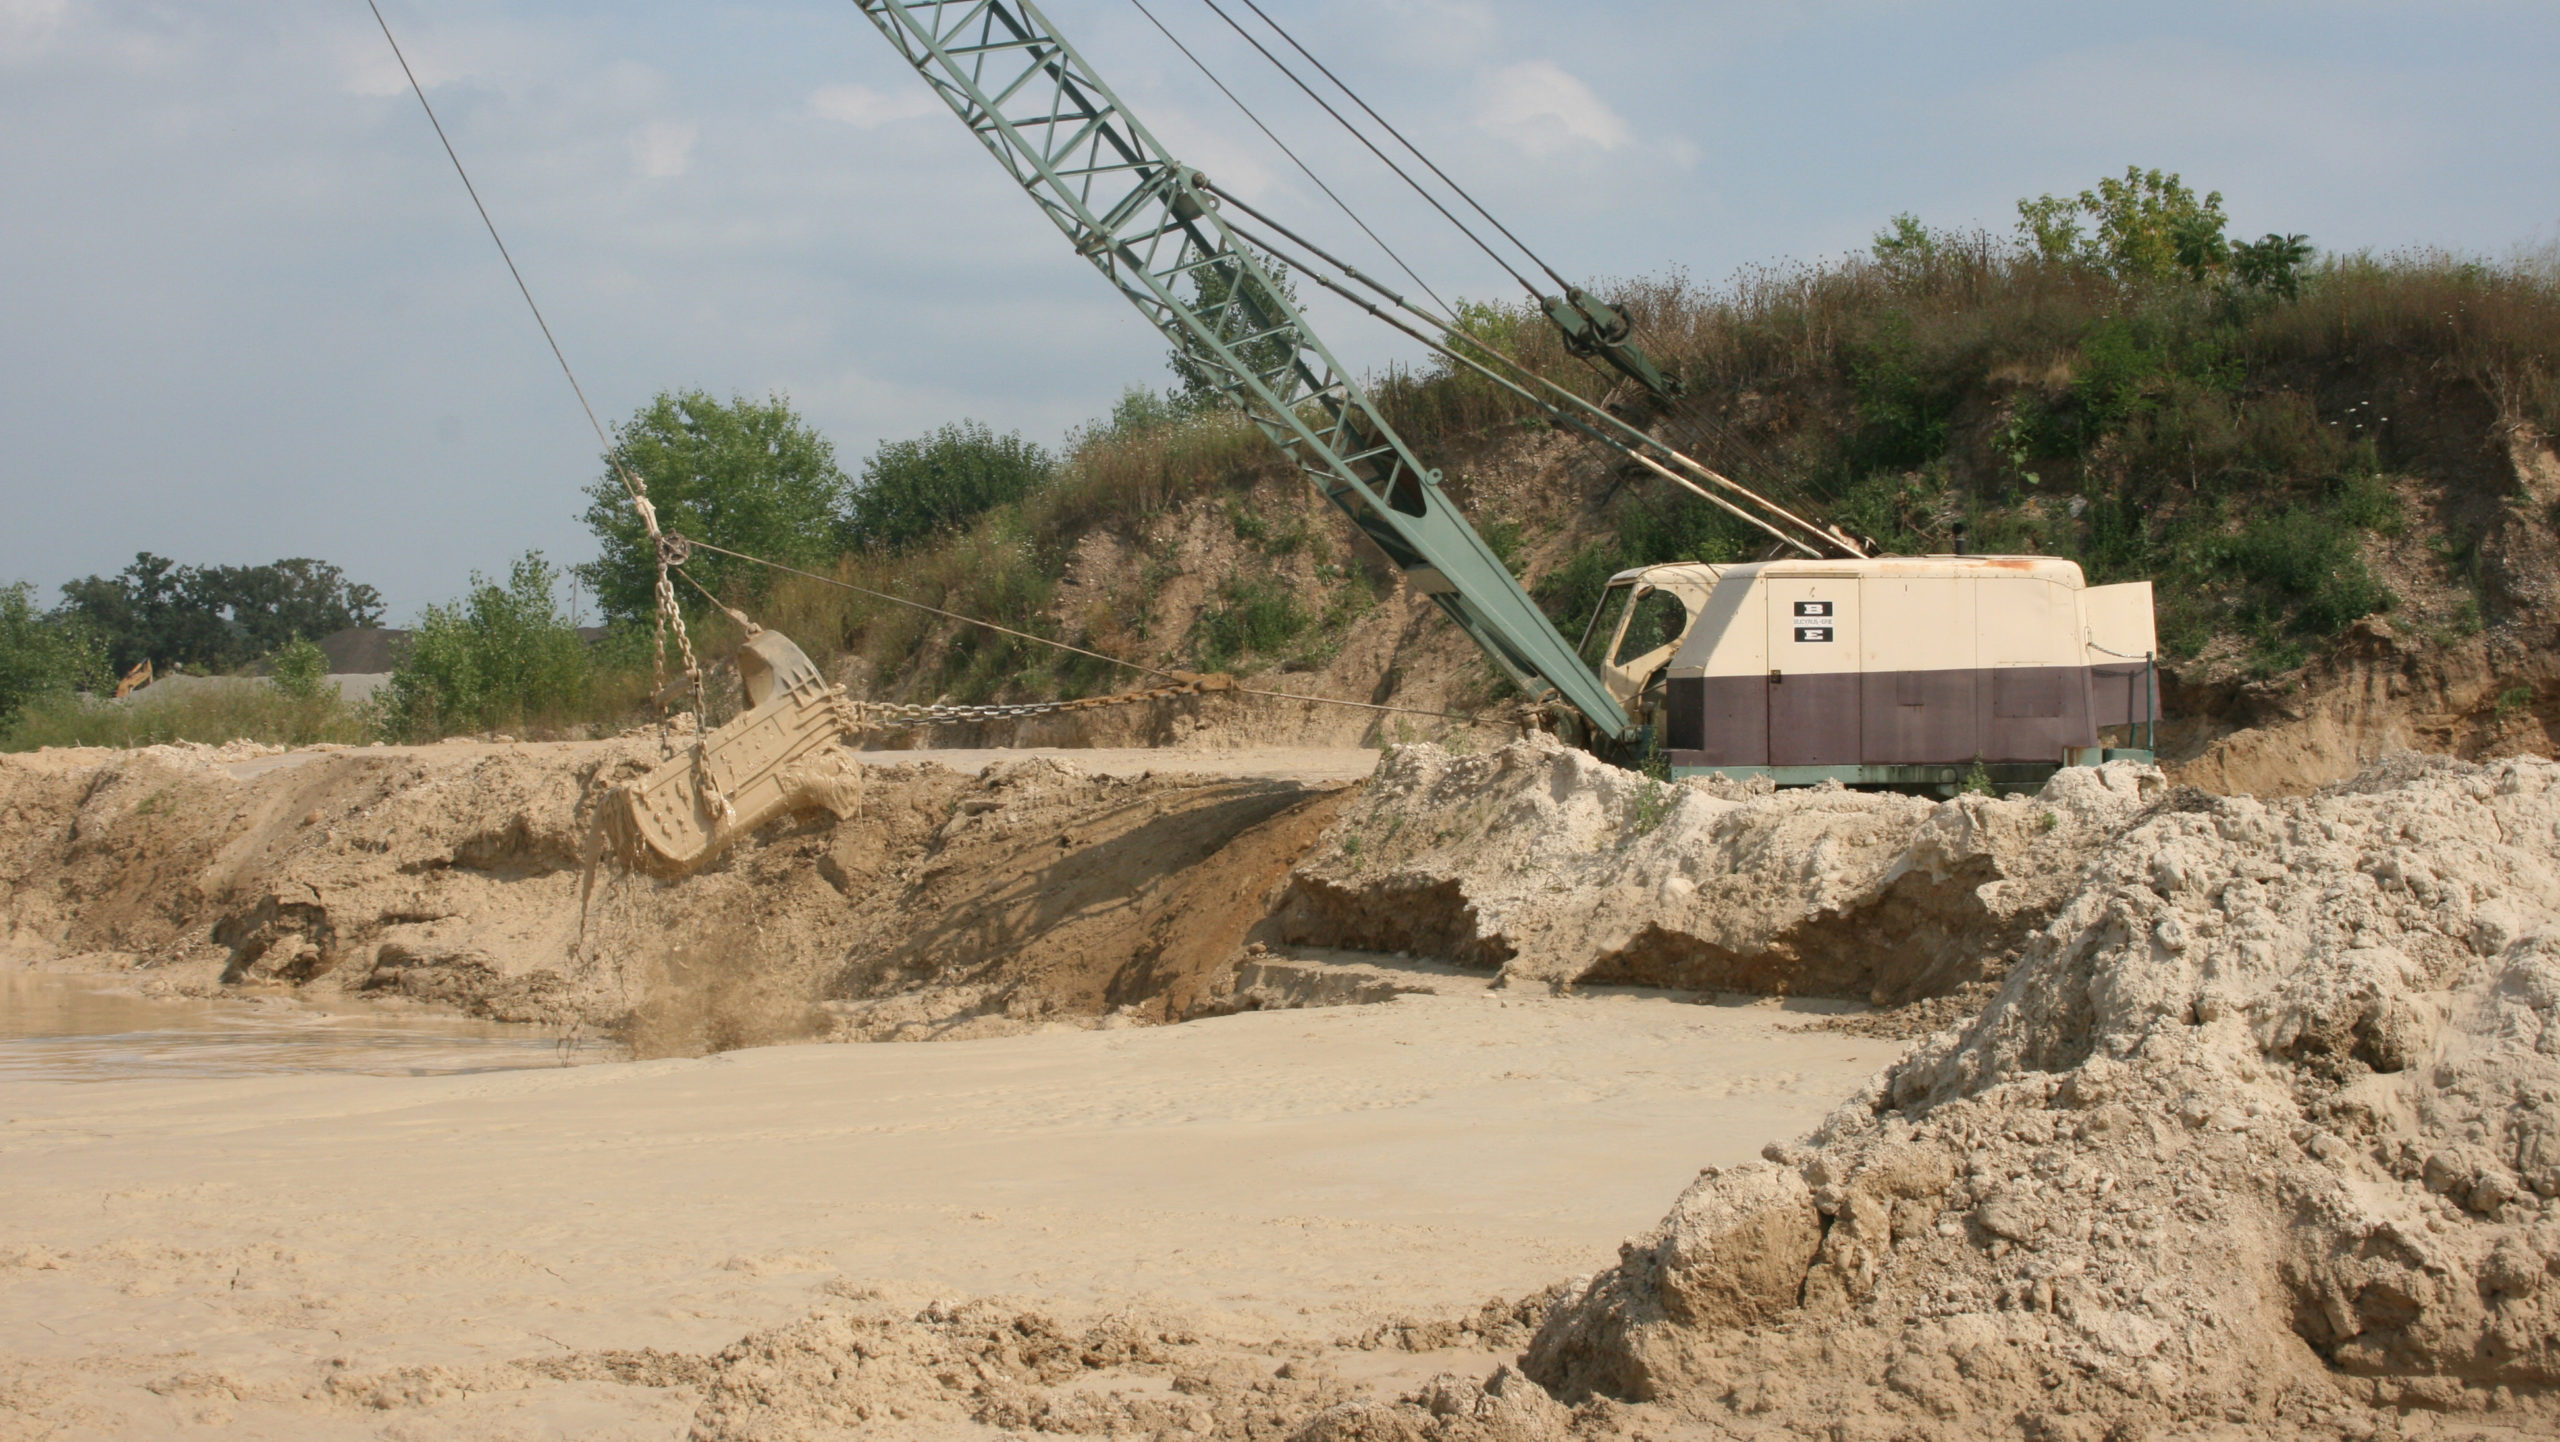 A tan and brown dragline crawler crane dredging a pond with stacked sand in the foreground.